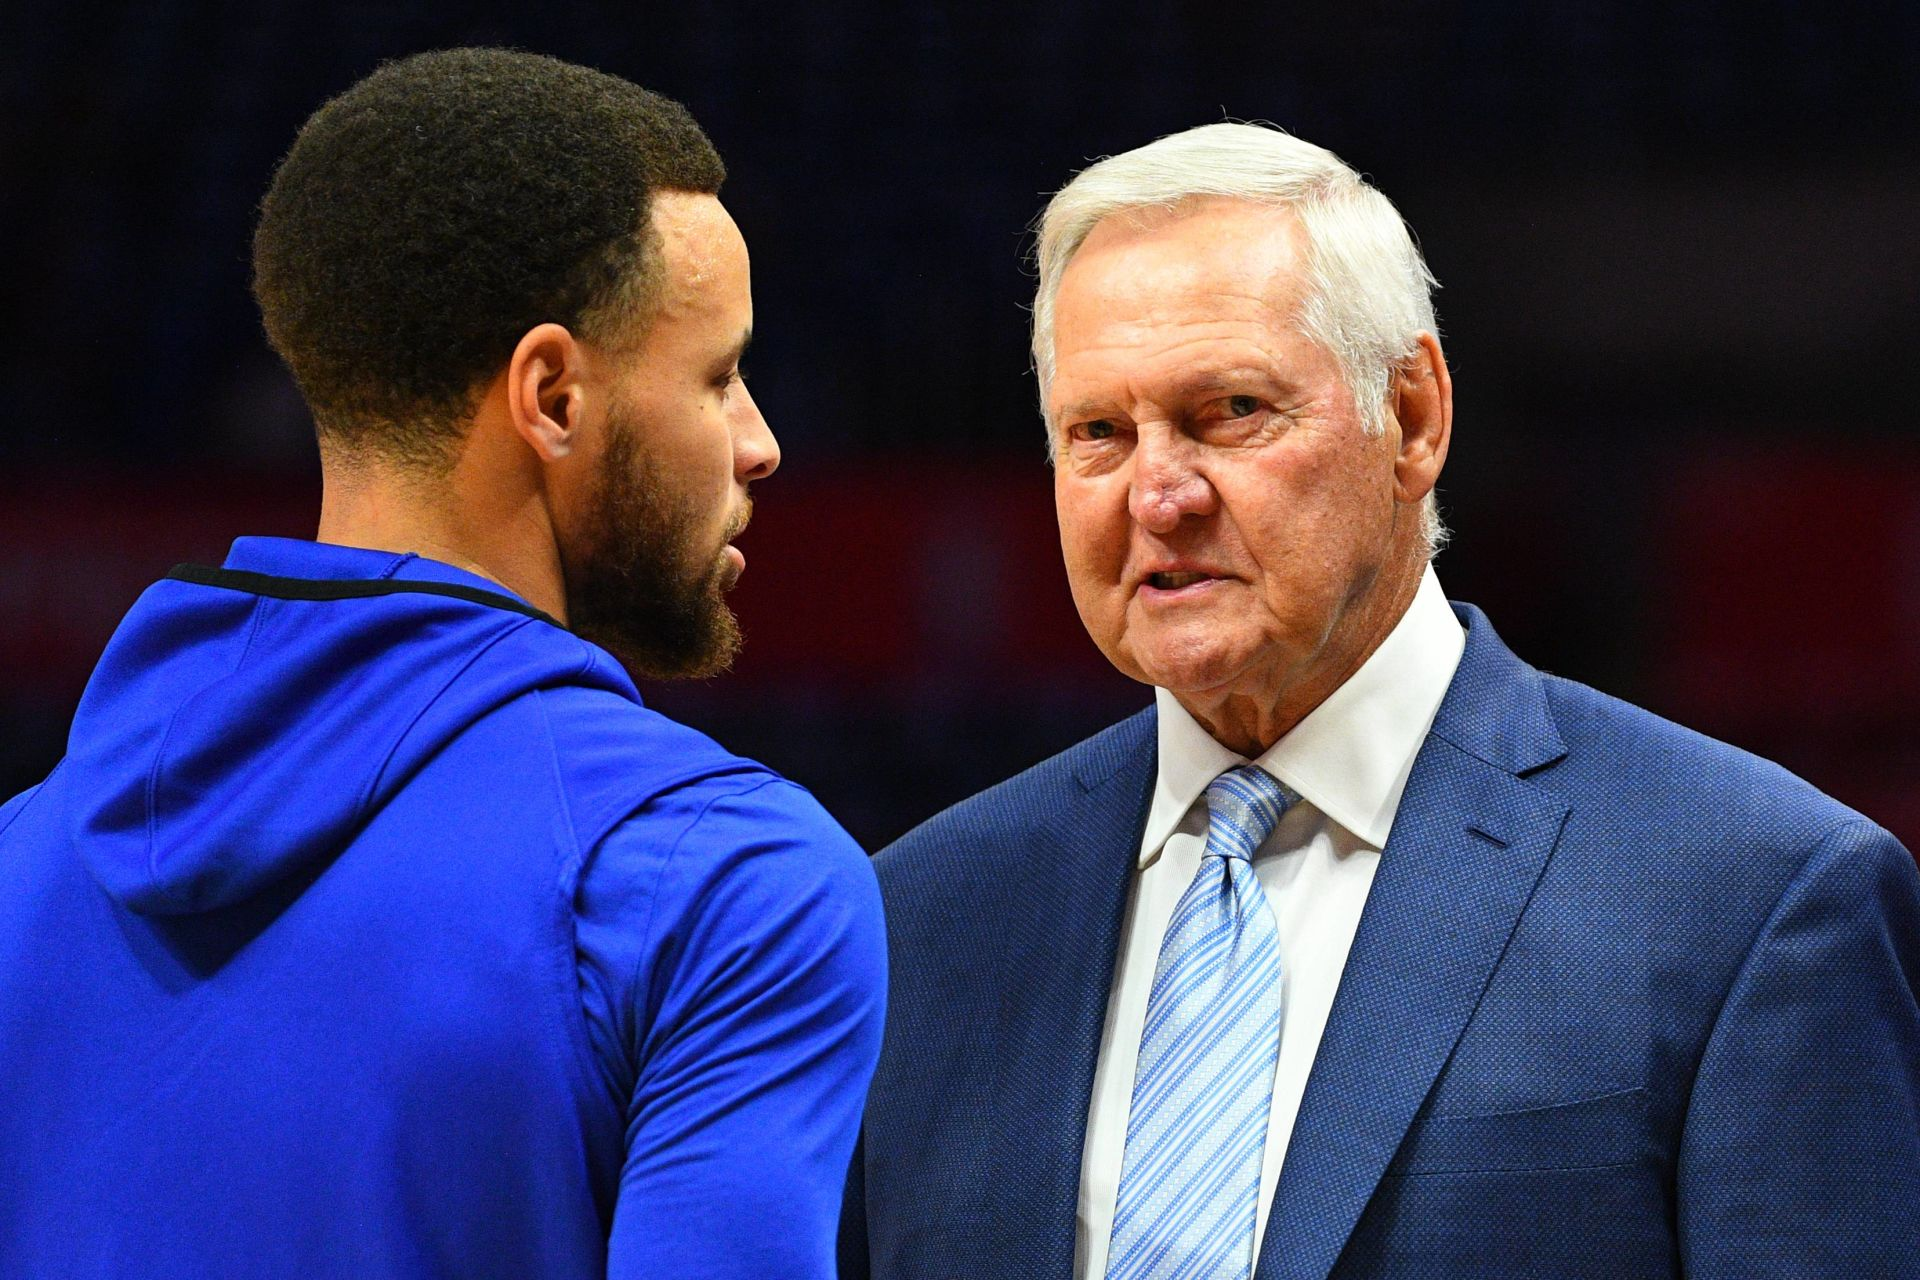 April 18, 2019 - Los Angeles, CA, U.S. - LOS ANGELES, CA - APRIL 18: Golden State Warriors Guard Stephen Curry (30) talks with Executive board member of the Los Angeles Clippers Jerry West before game three of the first round of the 2019 NBA Playoffs between the Golden State Warriors and the Los Angeles Clippers on April 18, 2019 at Staples Center in Las Angeles, CA.(Photo by Brian Rothmuller/Icon Sportswire) (Credit Image: © Brian Rothmuller/Icon SMI via ZUMA Press) NBA KOSZYKOWKA MEZCZYZN FOT. ZUMA/NEWSPIX.PL POLAND ONLY! --- Newspix.pl *** Local Caption *** www.newspix.pl mail us: info@newspix.pl call us: 0048 022 23 22 222 --- Polish Picture Agency by Ringier Axel Springer Poland